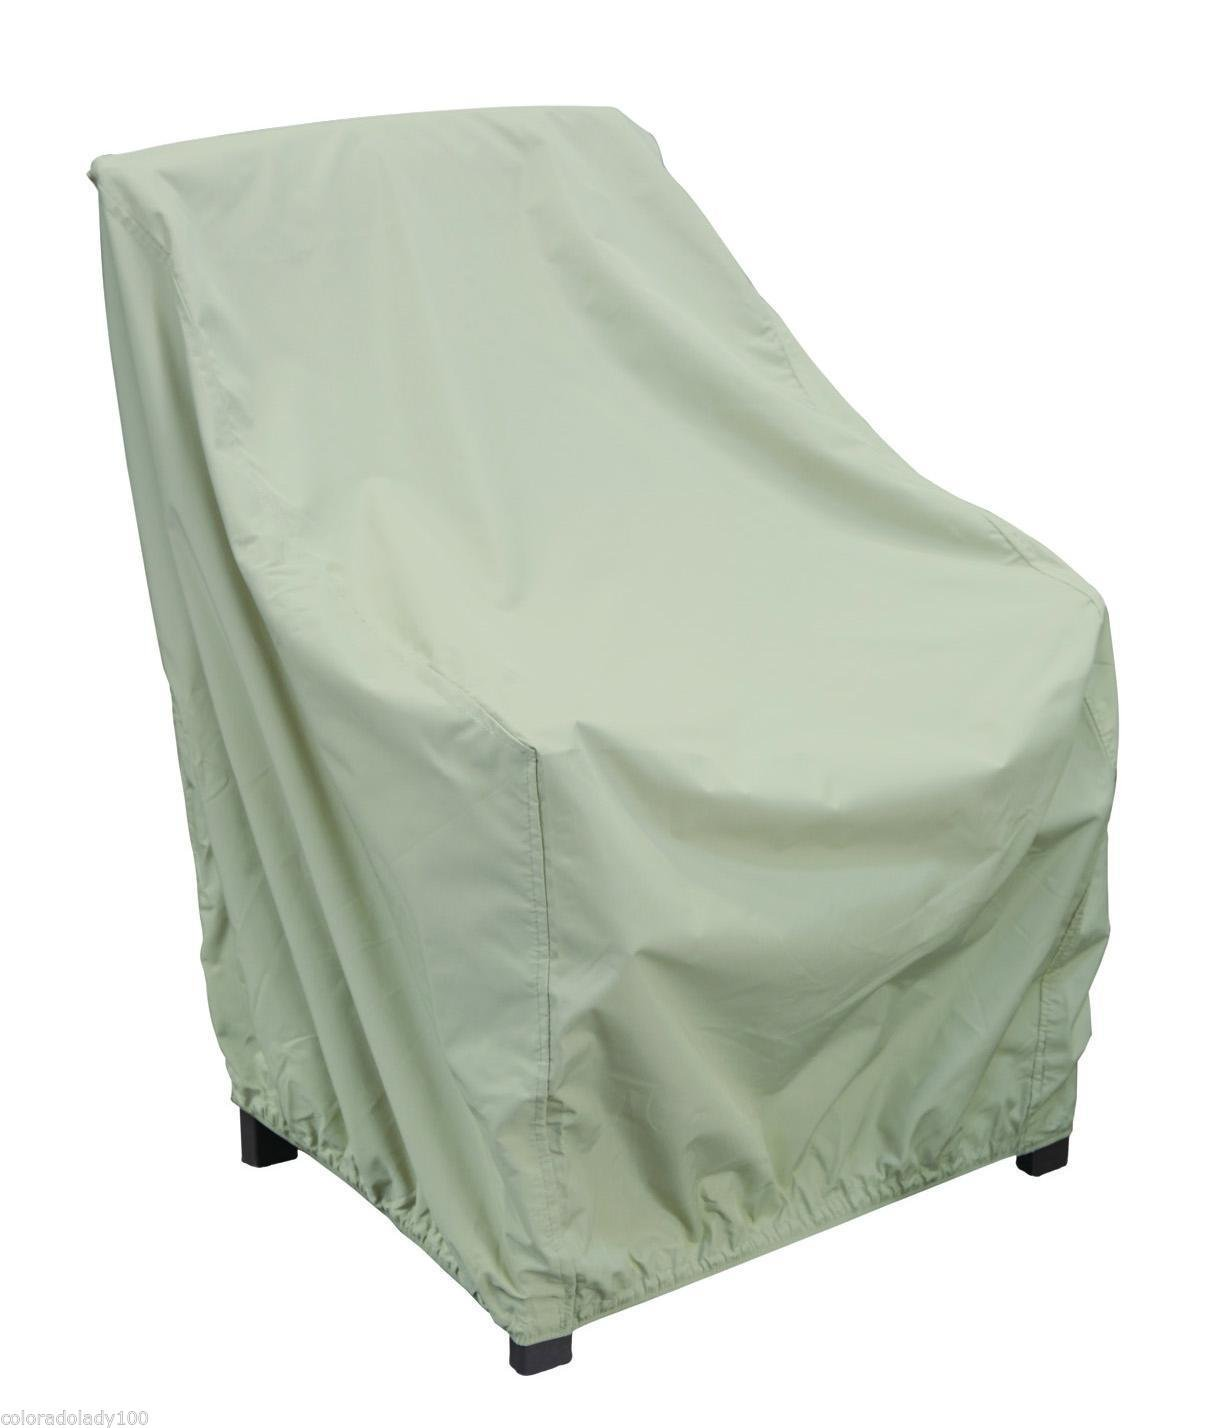 Treasure Garden Protective Patio Furniture Cover CP241 for Deep Seat Club Chairs